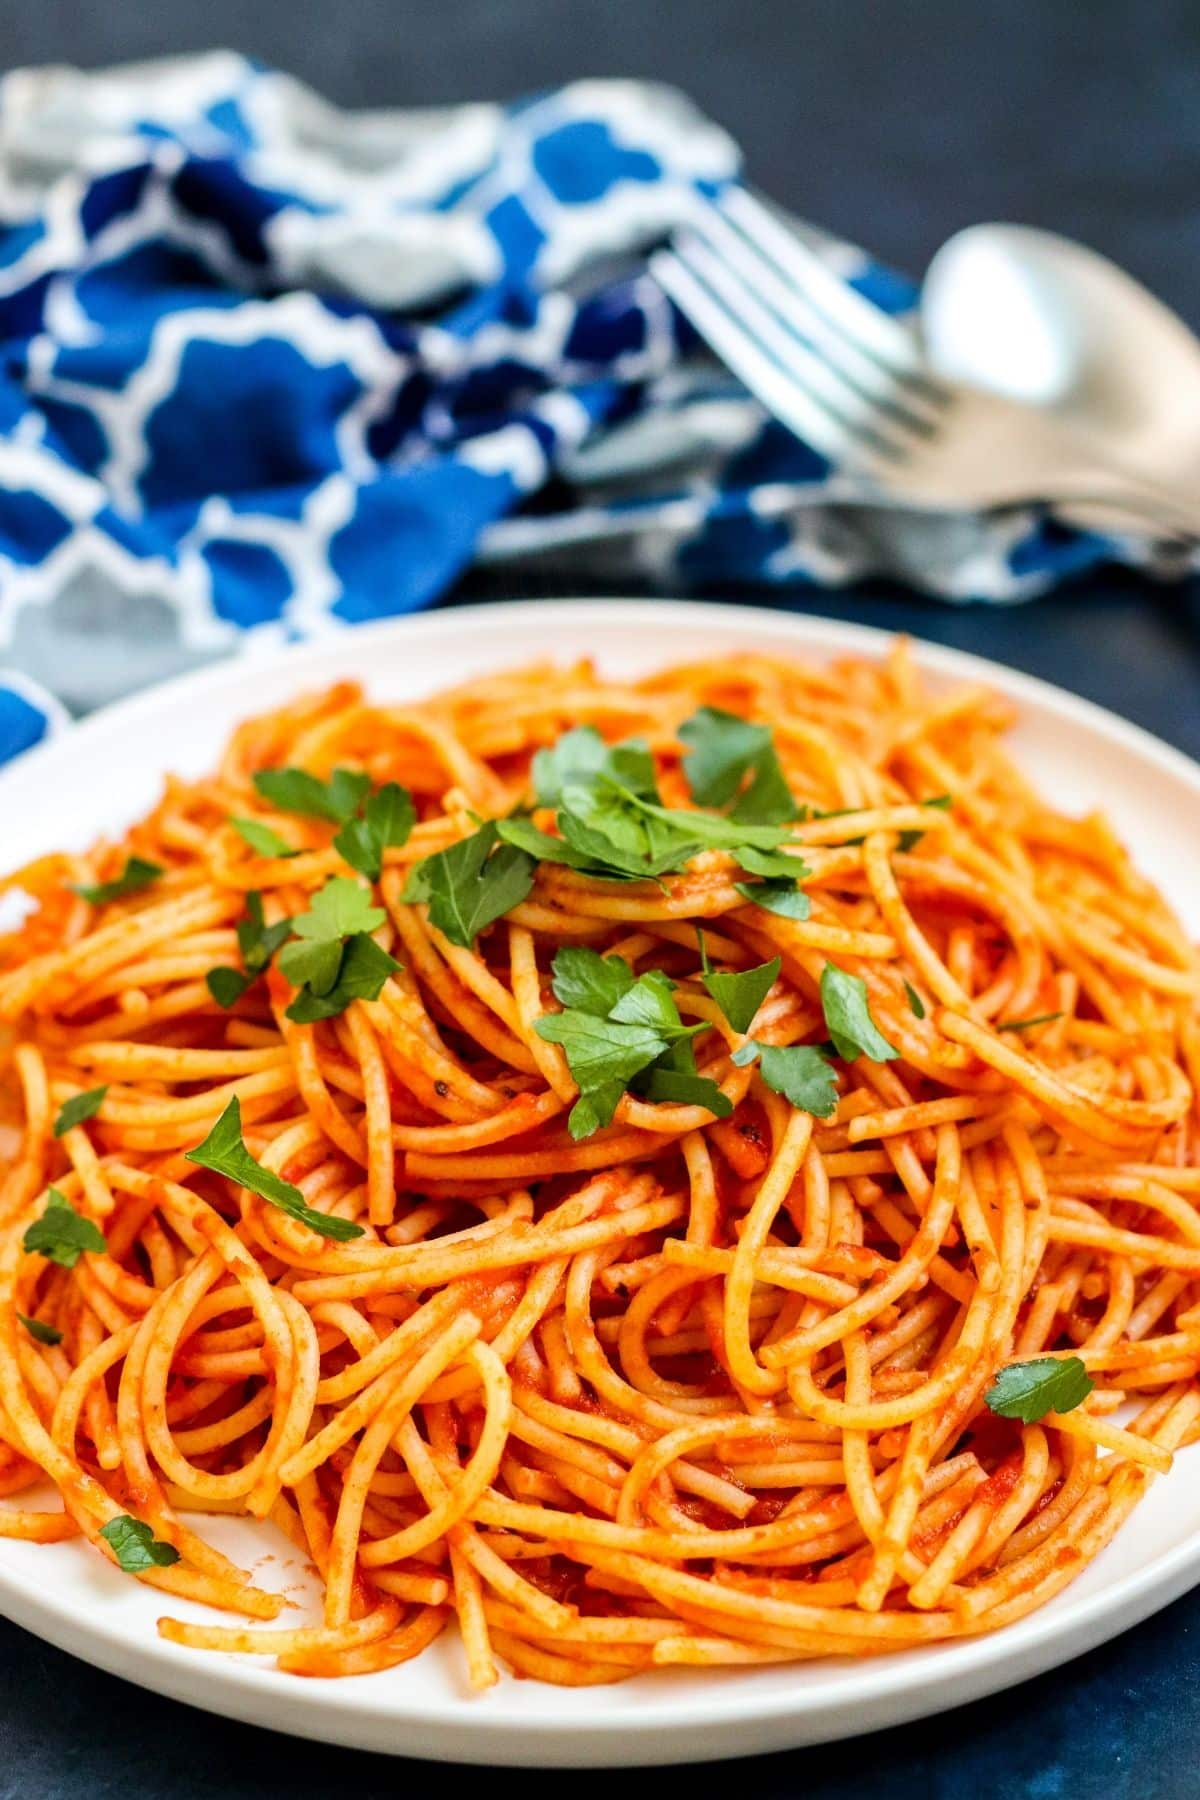 Close up of plate of spaghetti in tomato paste pasta sauce garnished with fresh herbs